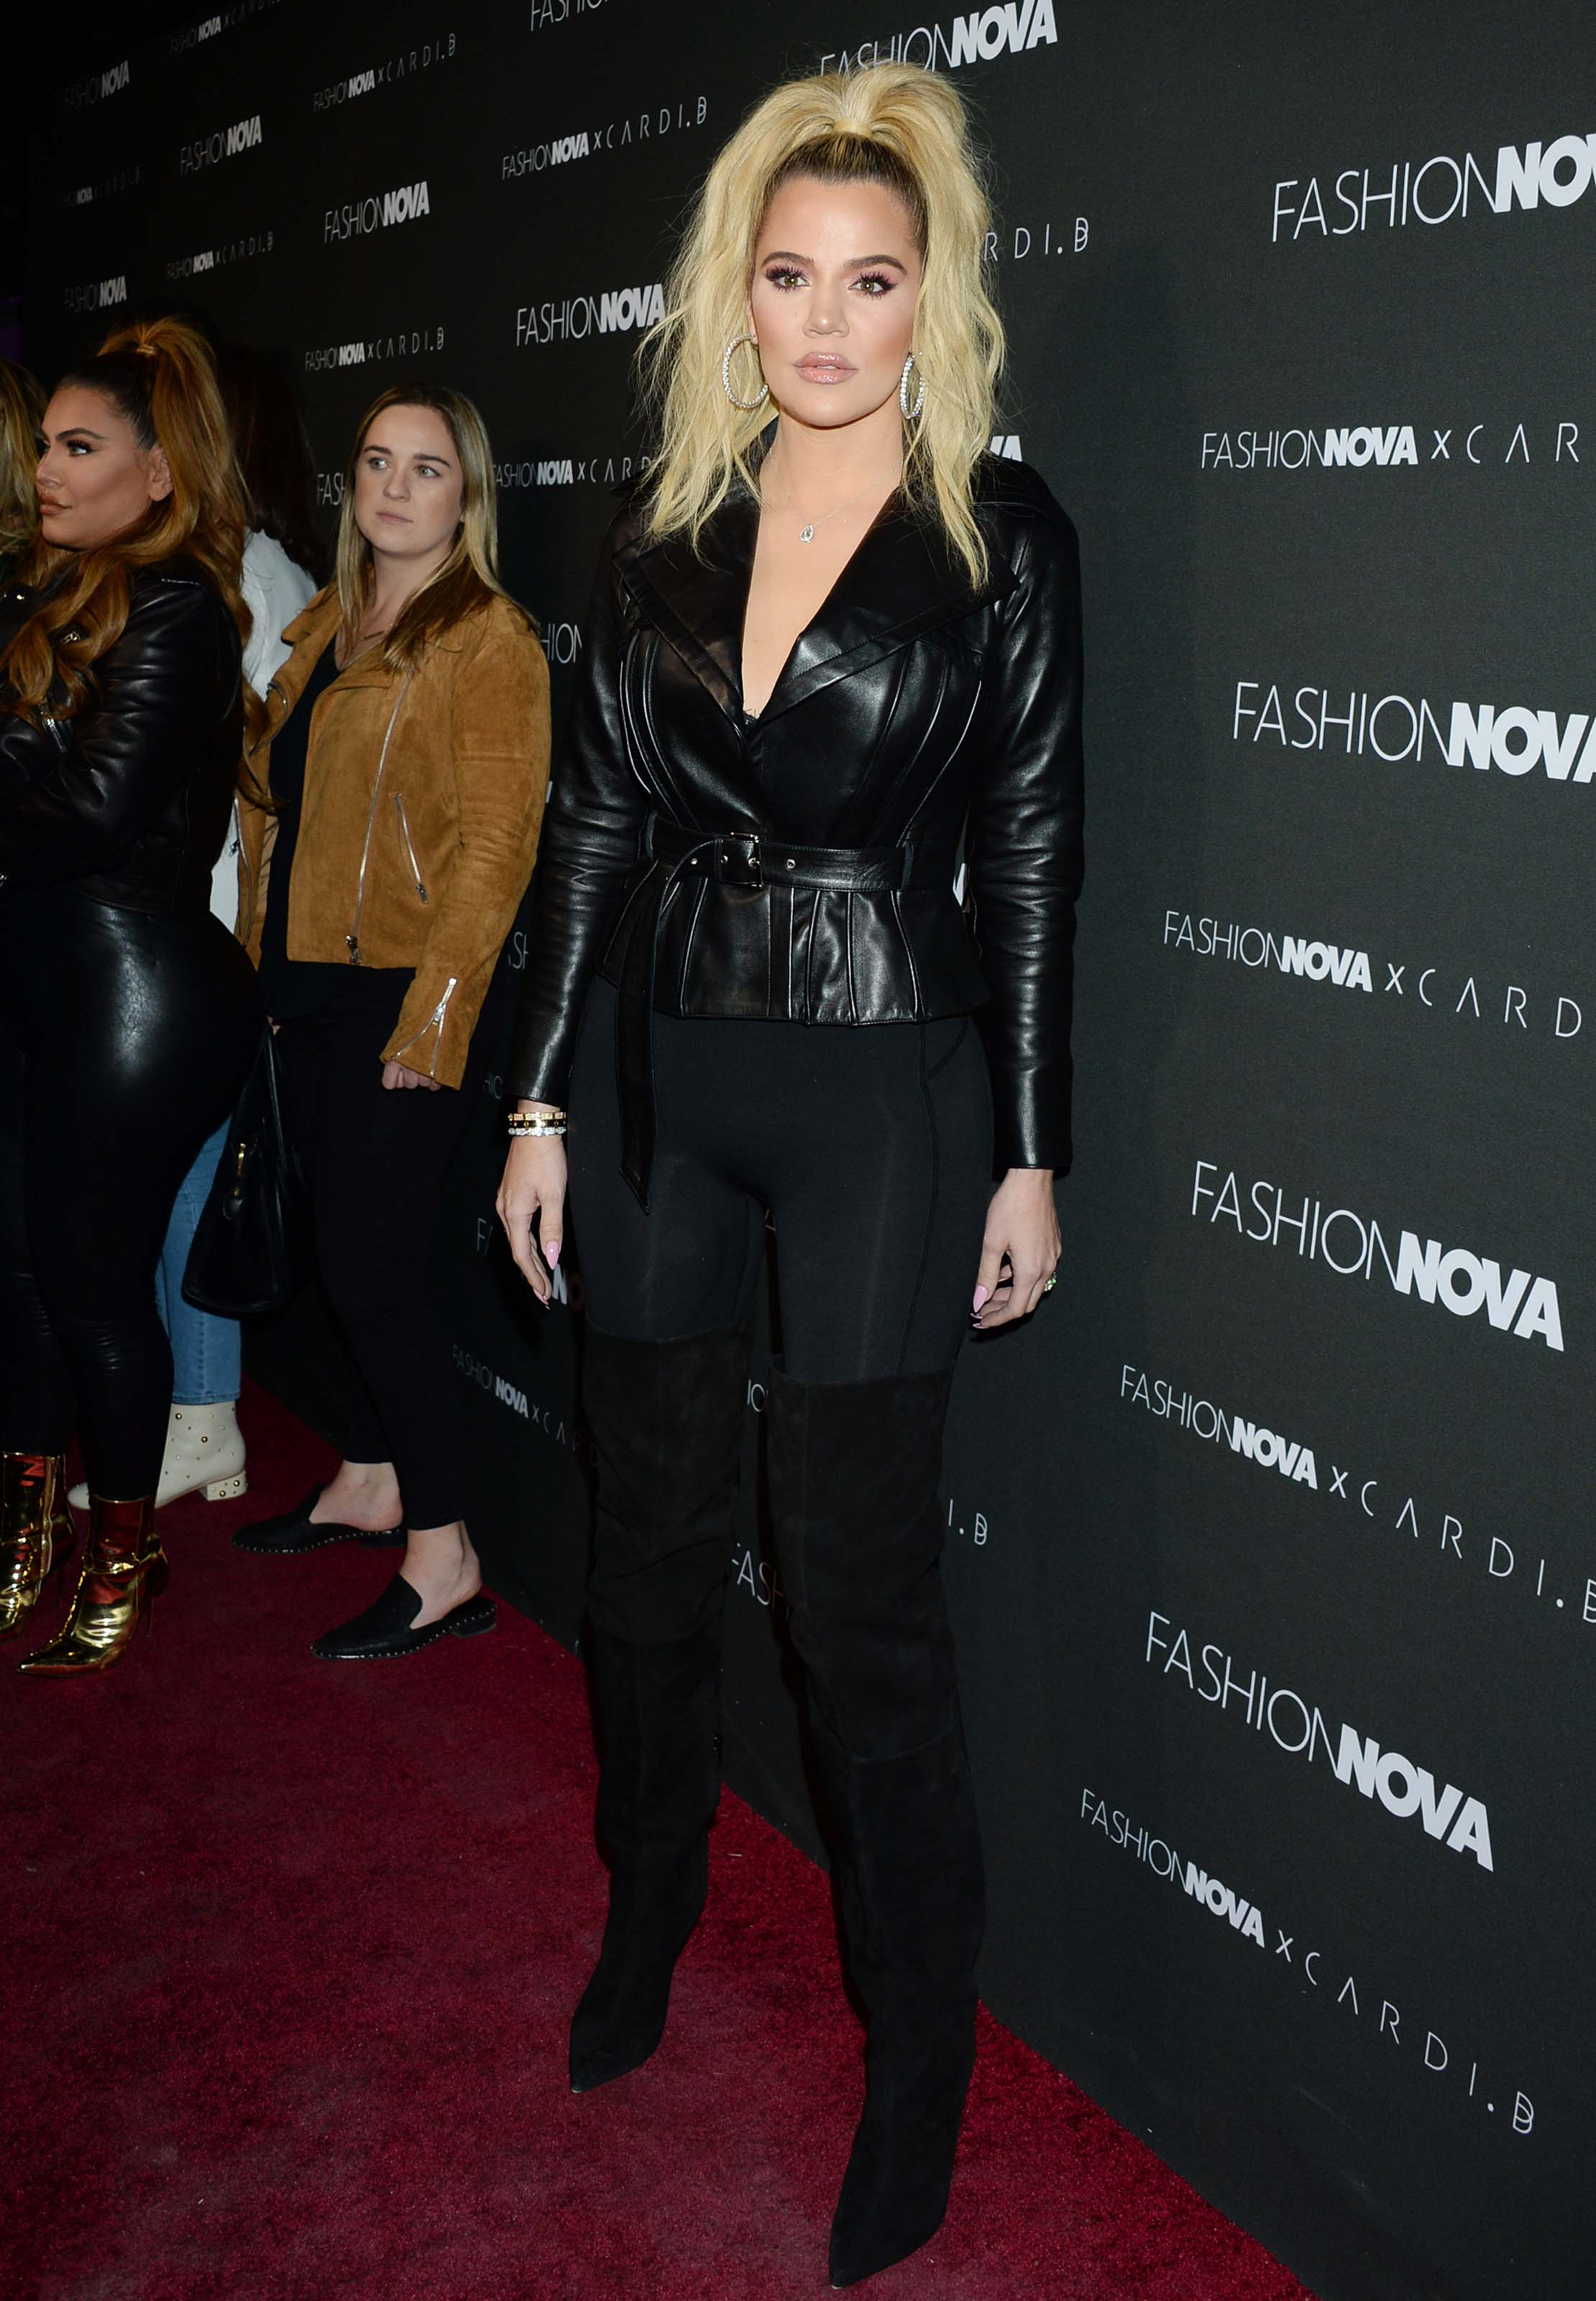 Khloe Kardashian & Hrush Achemyan attend Fashion Nova x Cardi B Launch Event